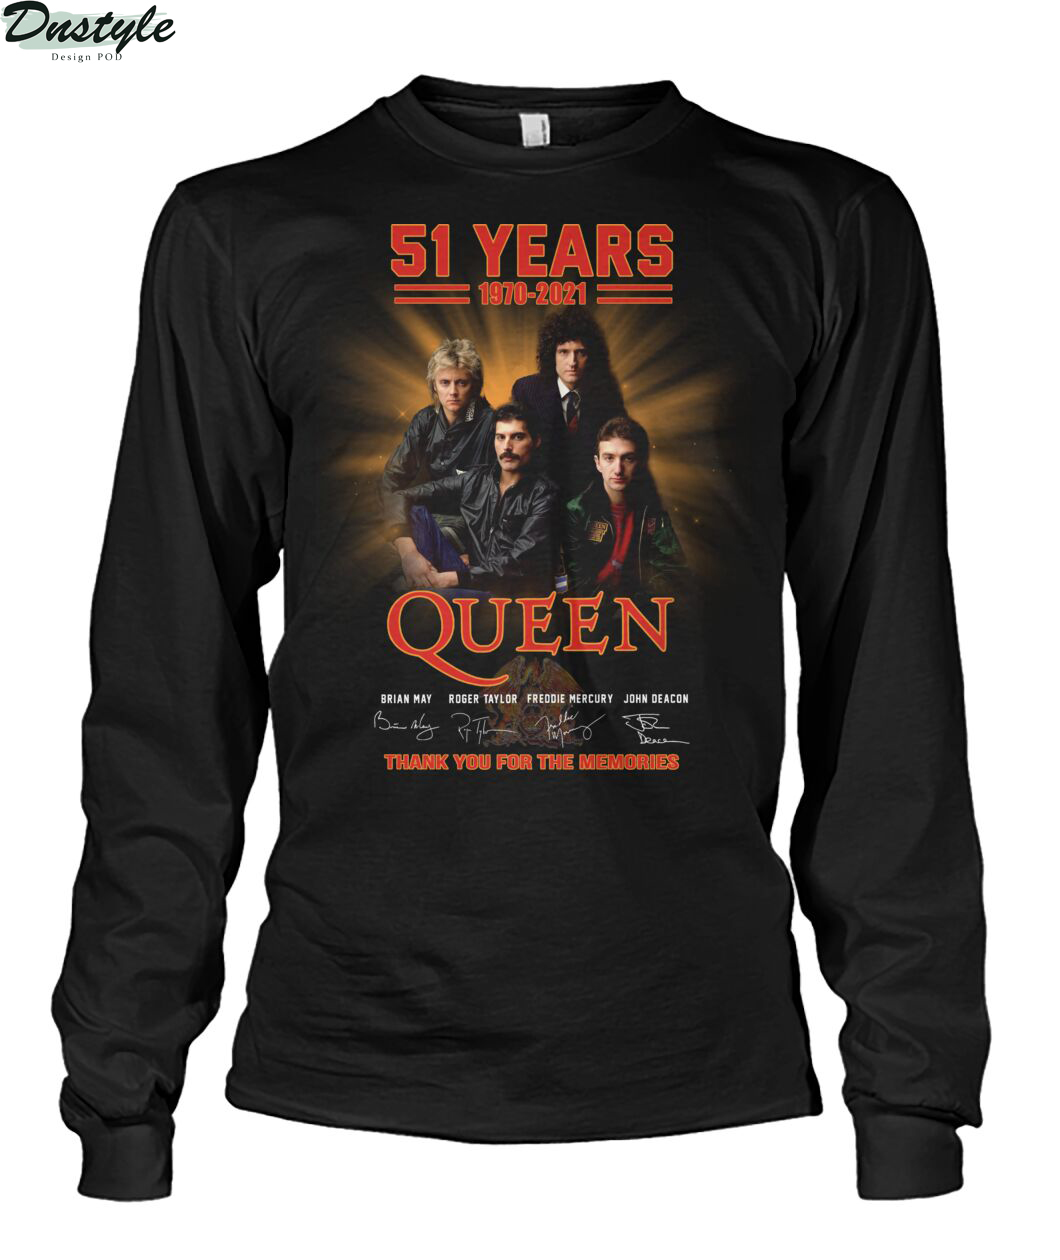 51 years 1979 2021 Queen thank you for the memories long sleeve